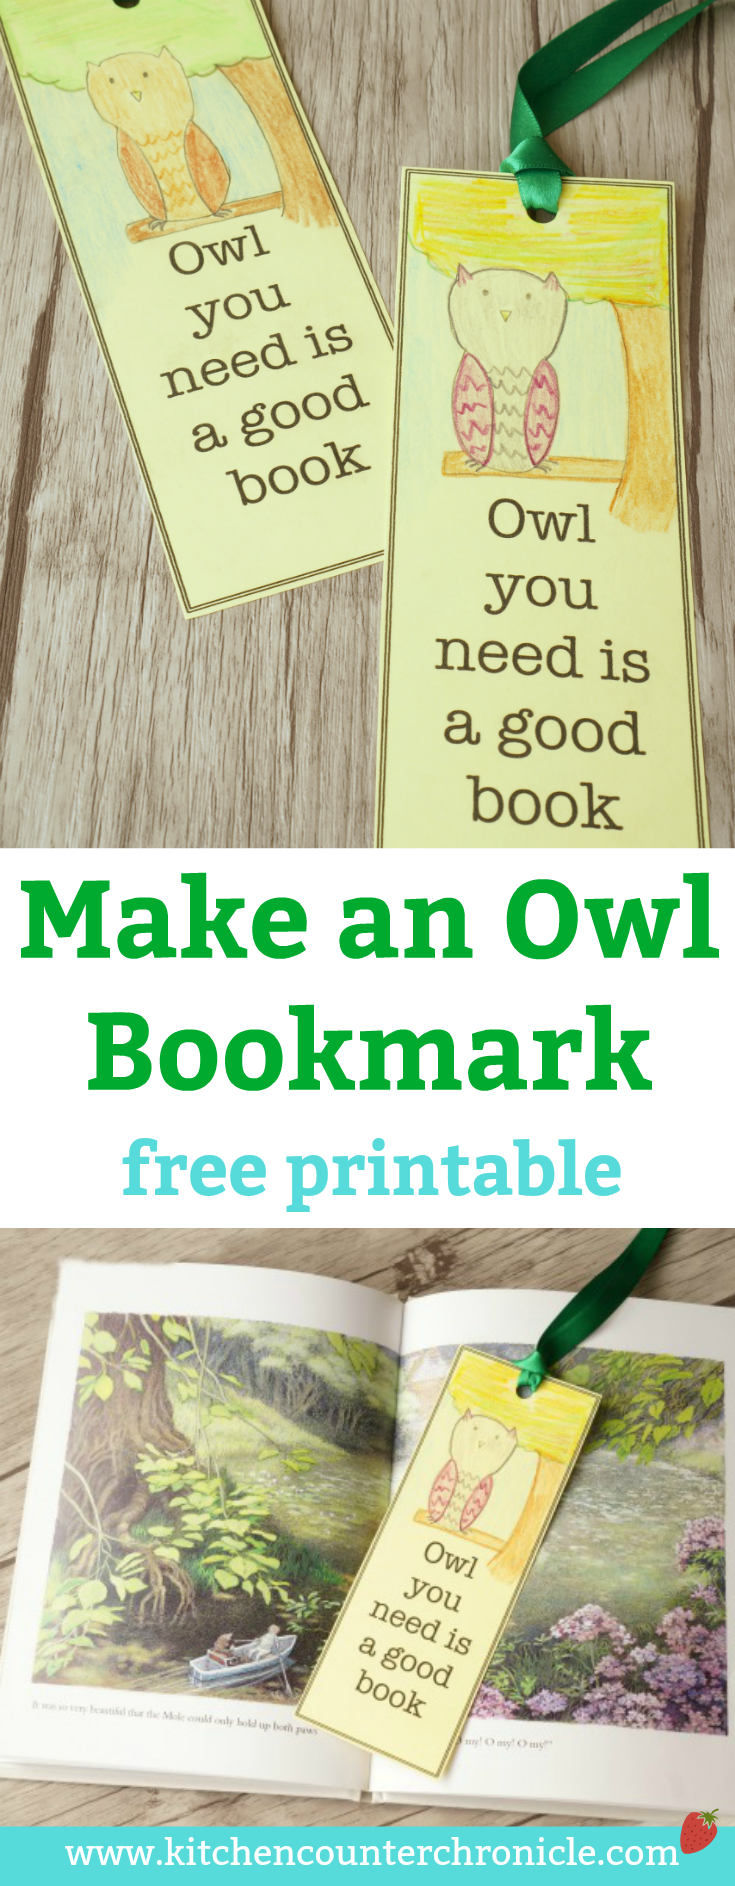 Make an Owl Bookmark - A free printable owl bookmark. Explore owls and the letter